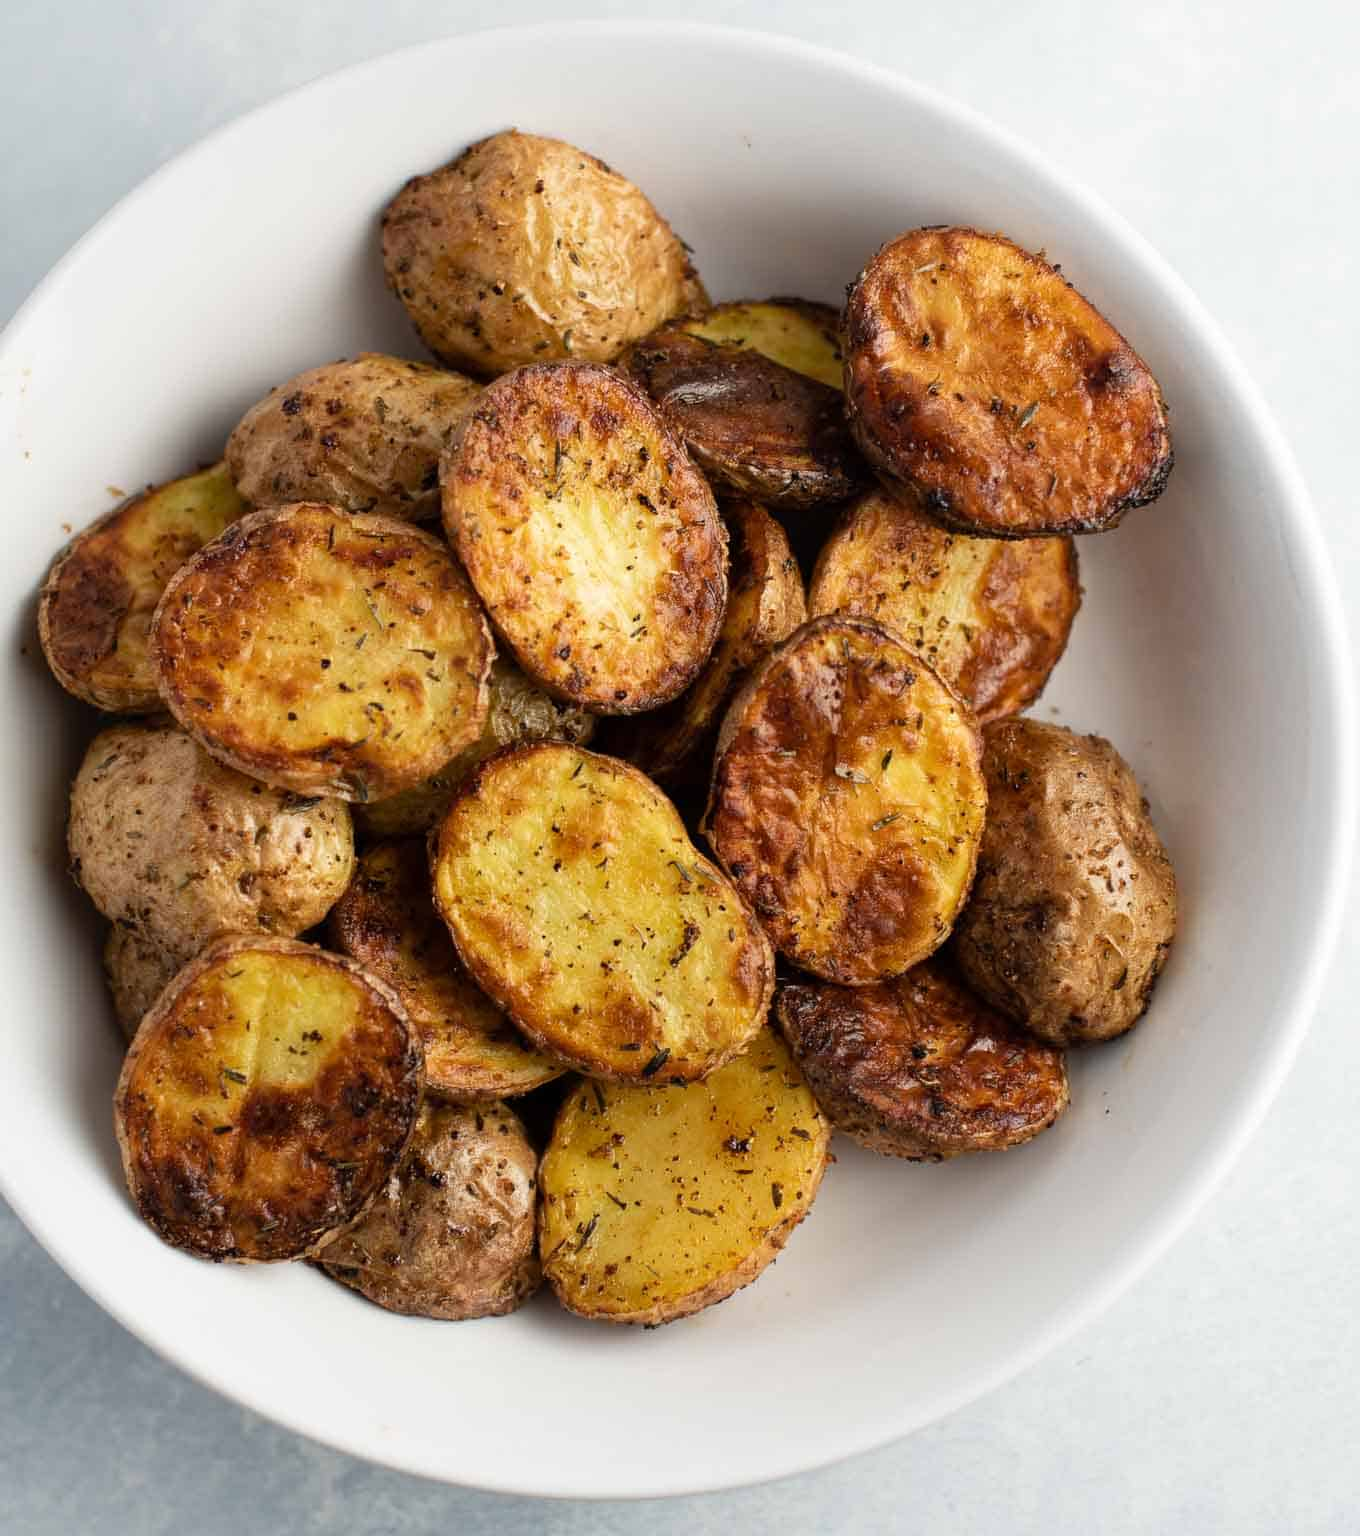 roasted potatoes in a white bowl from an overhead view